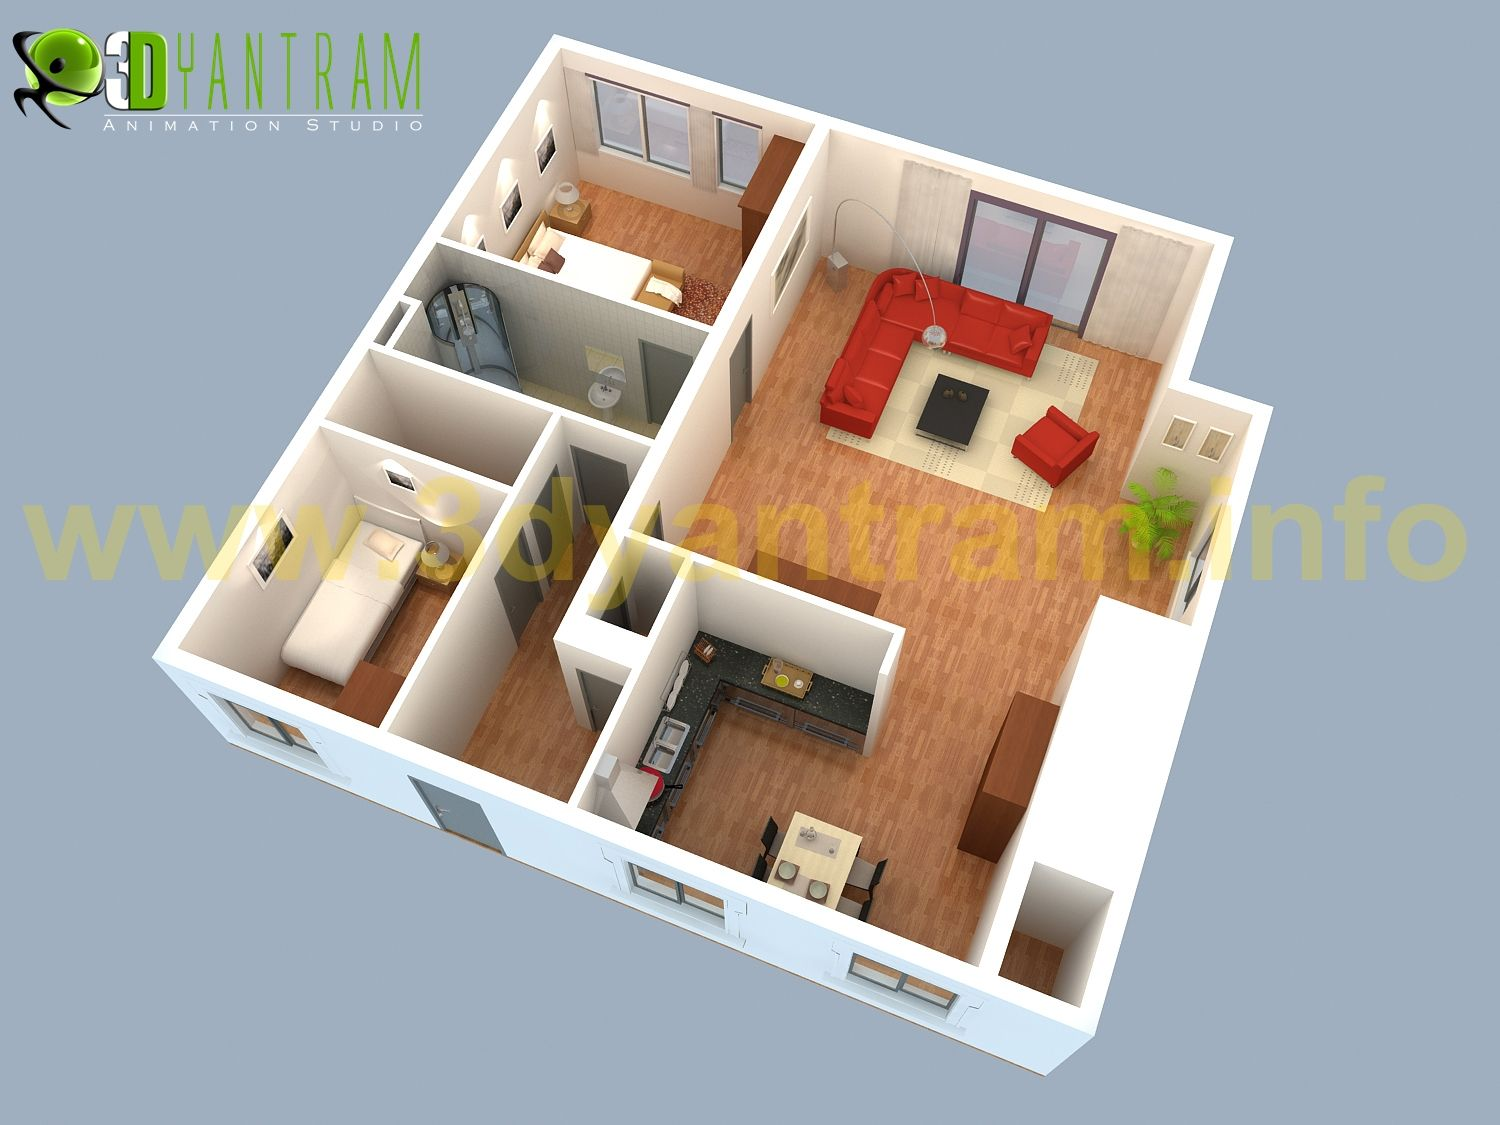 Small House 3d Floor Plan Design Cgi 3d House Plans Small House Floor Plans Small House Design Floor Plan